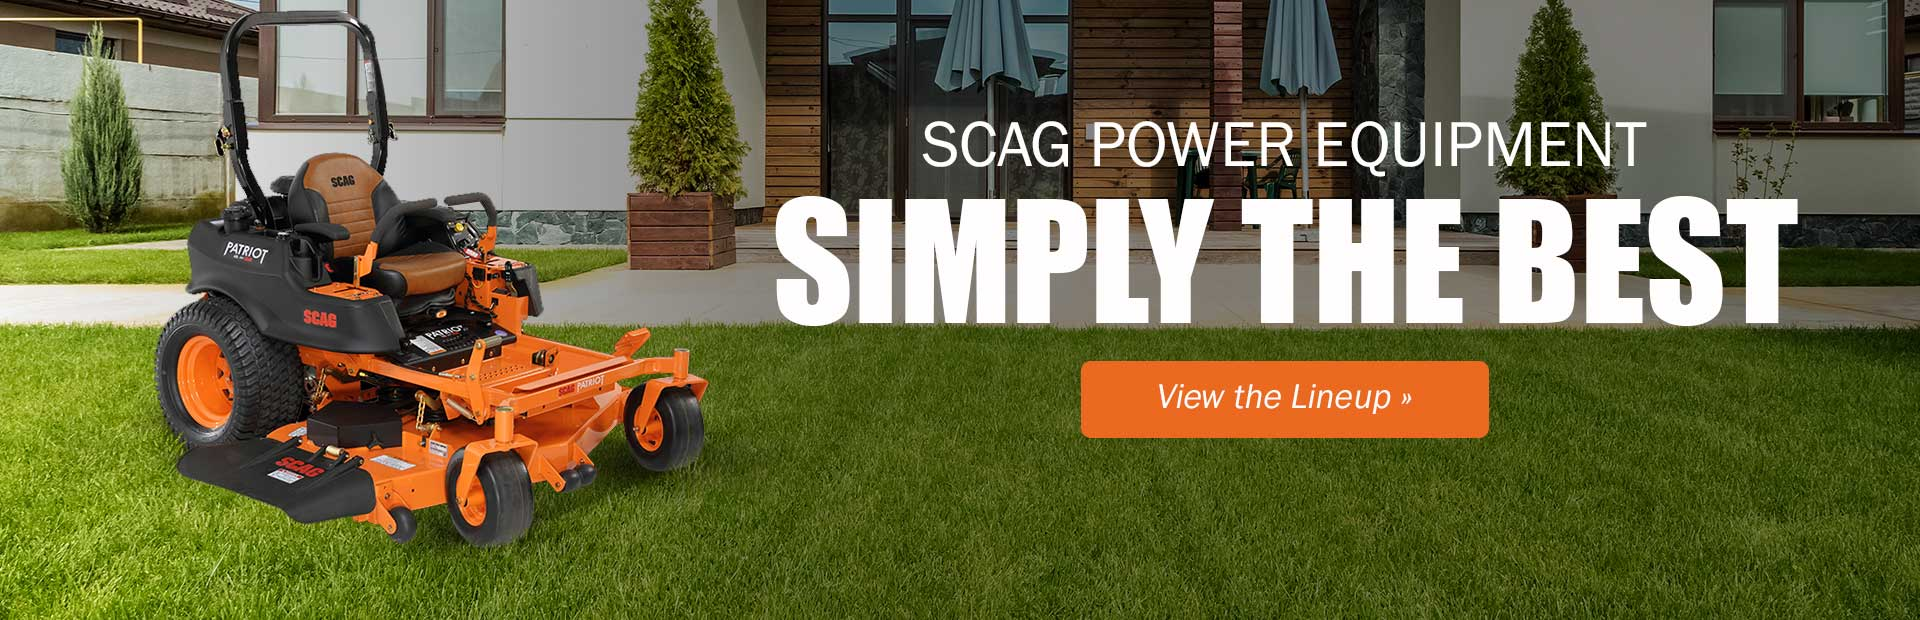 Scag Power Equipment: Click here to view the lineup.